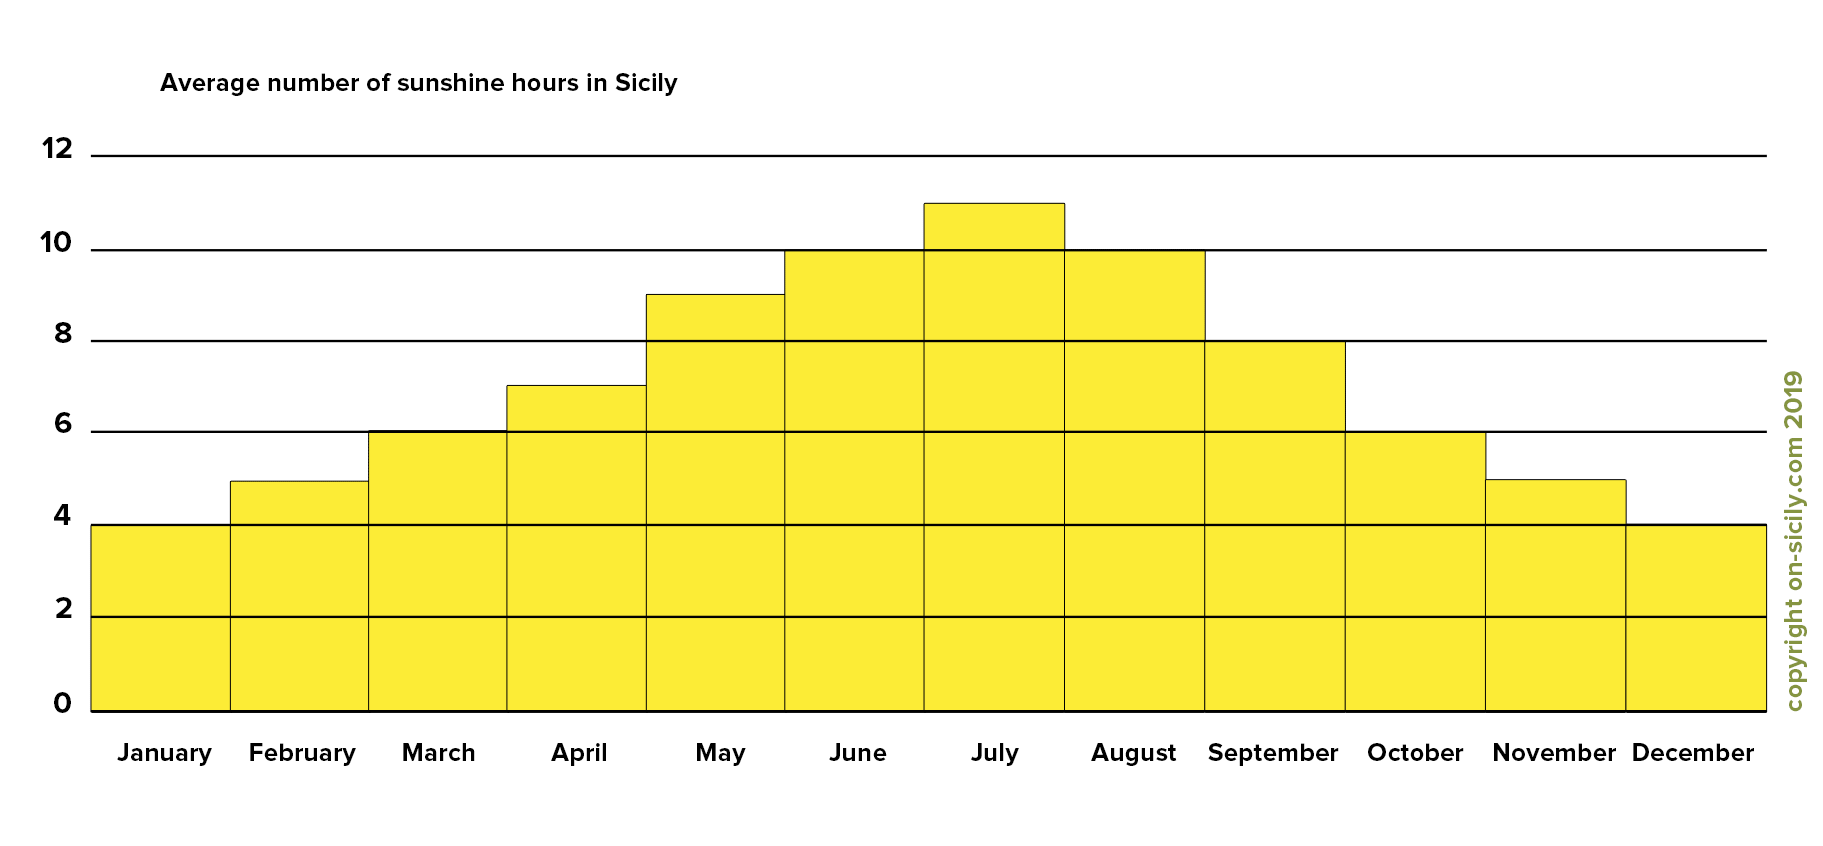 The average number of sun hours in Sicily